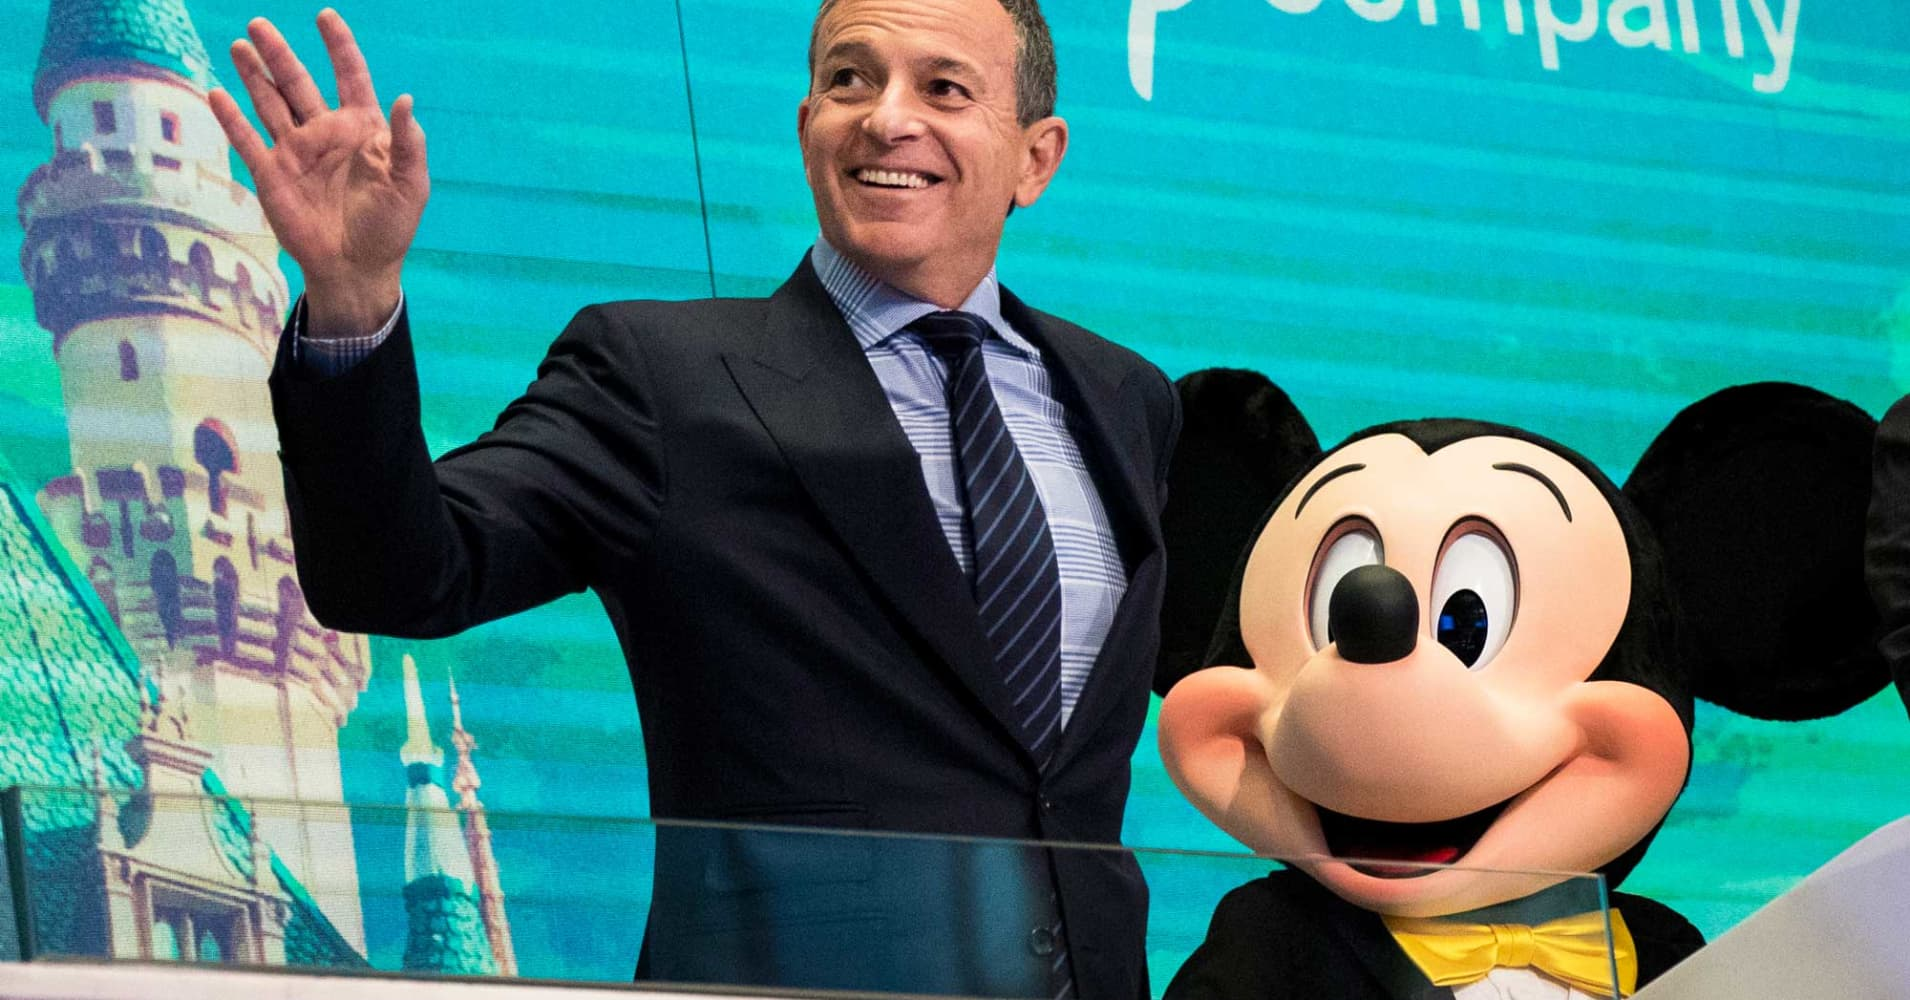 Disney To Buy 21st Century Fox Assets For 524 Billion In Stock